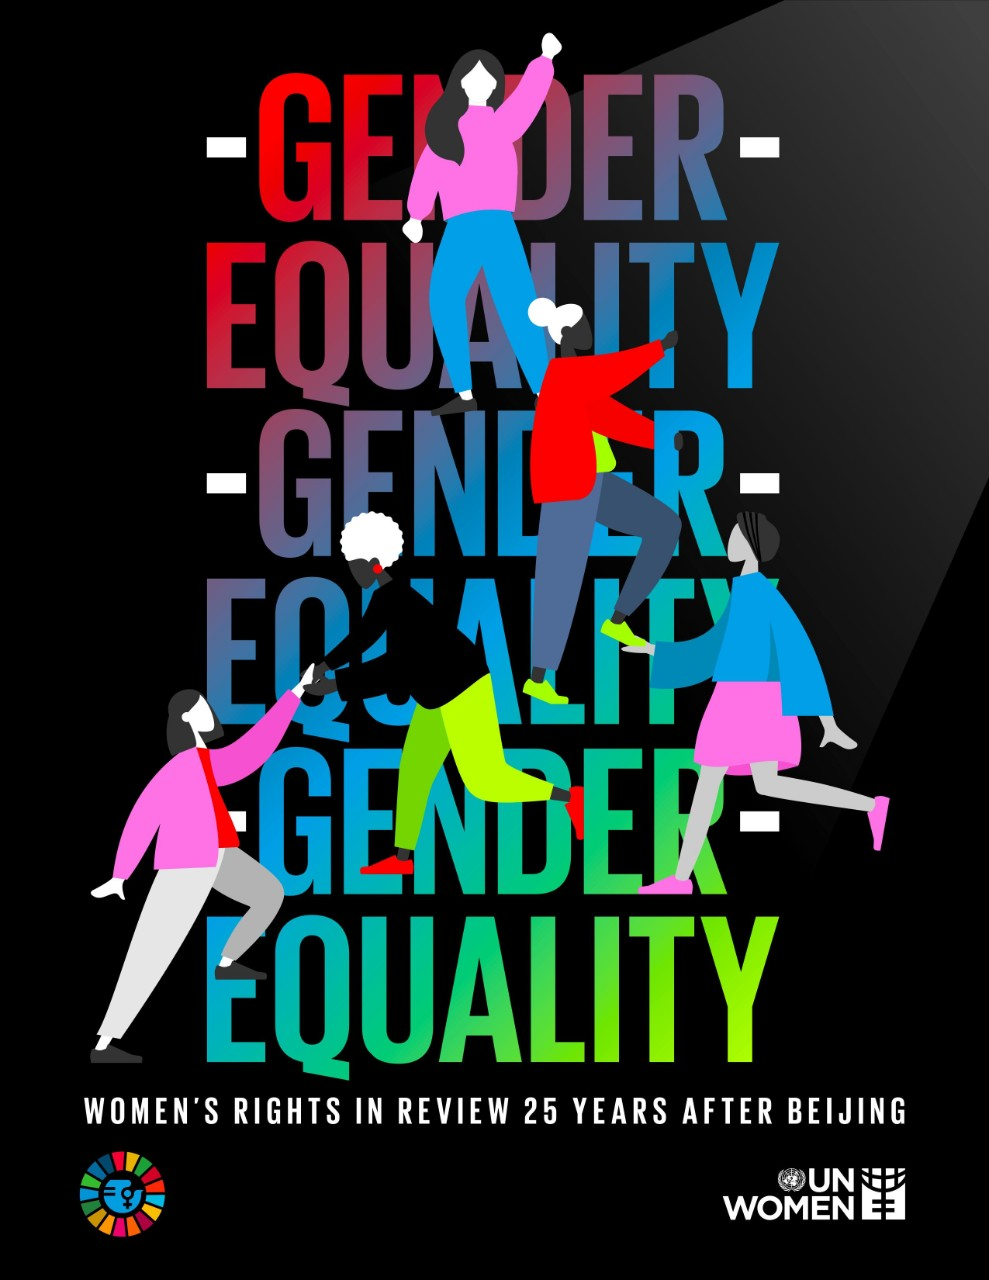 Gender equality: Women's rights in review 25 years after Beijing